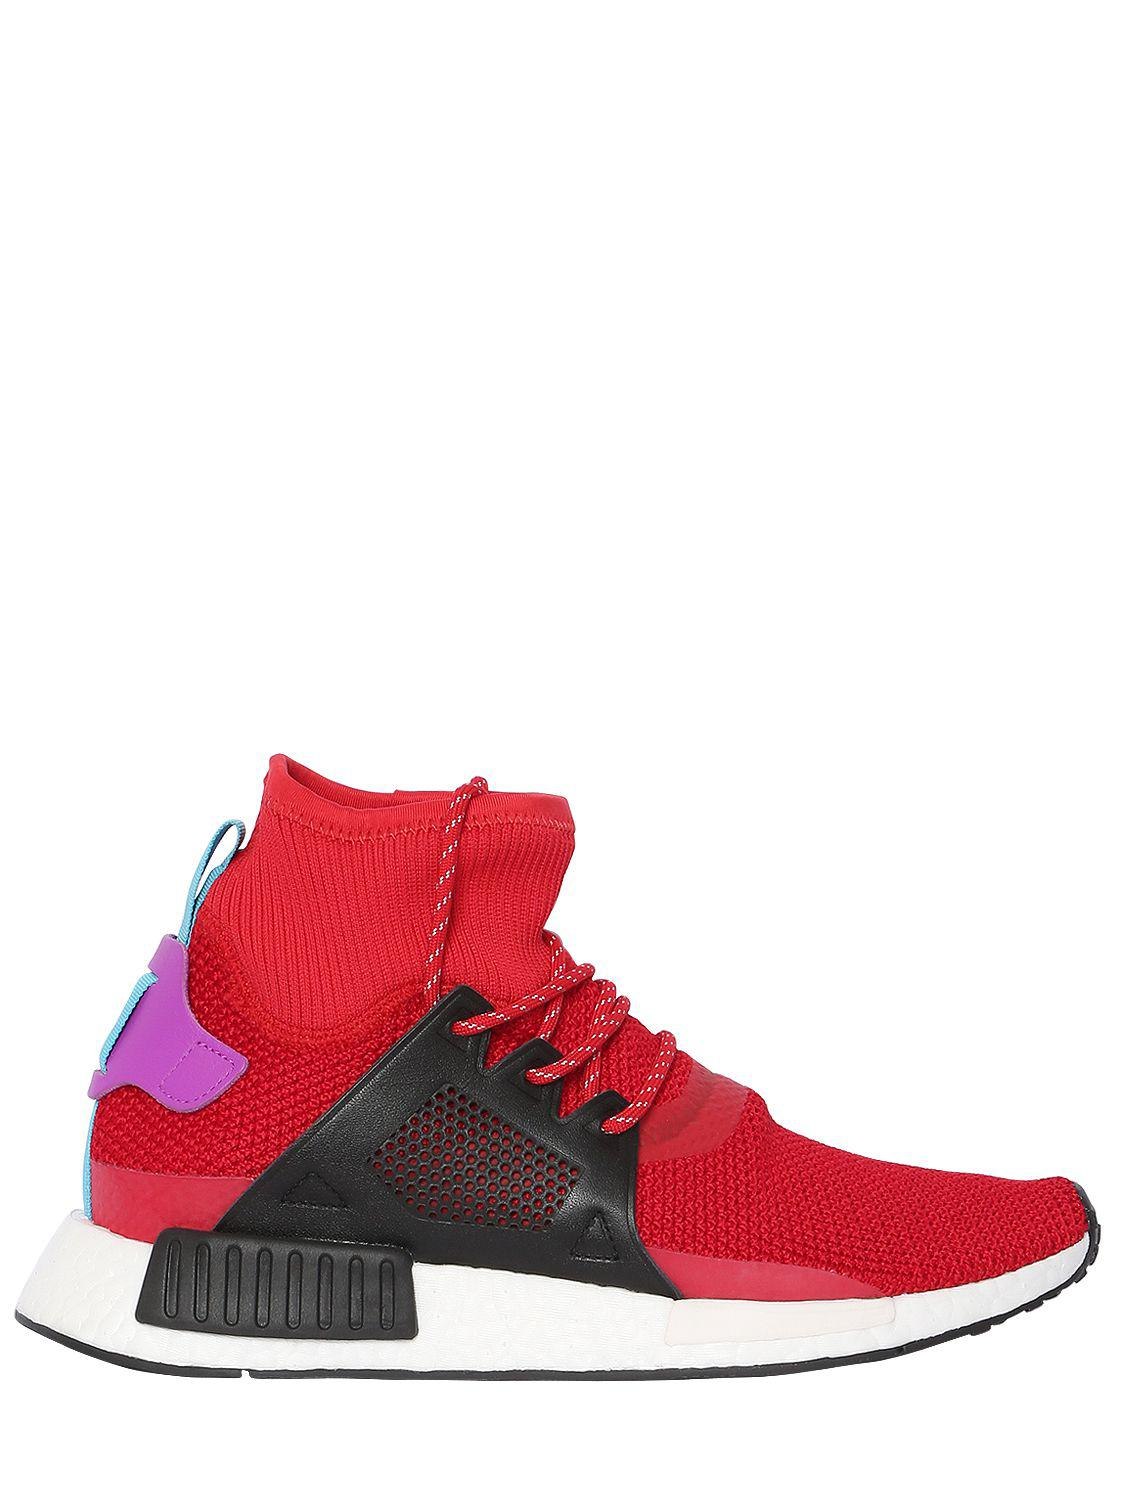 db688ba50f157 adidas Originals Nmd Xr1 Adventure Sneakers in Red for Men - Lyst